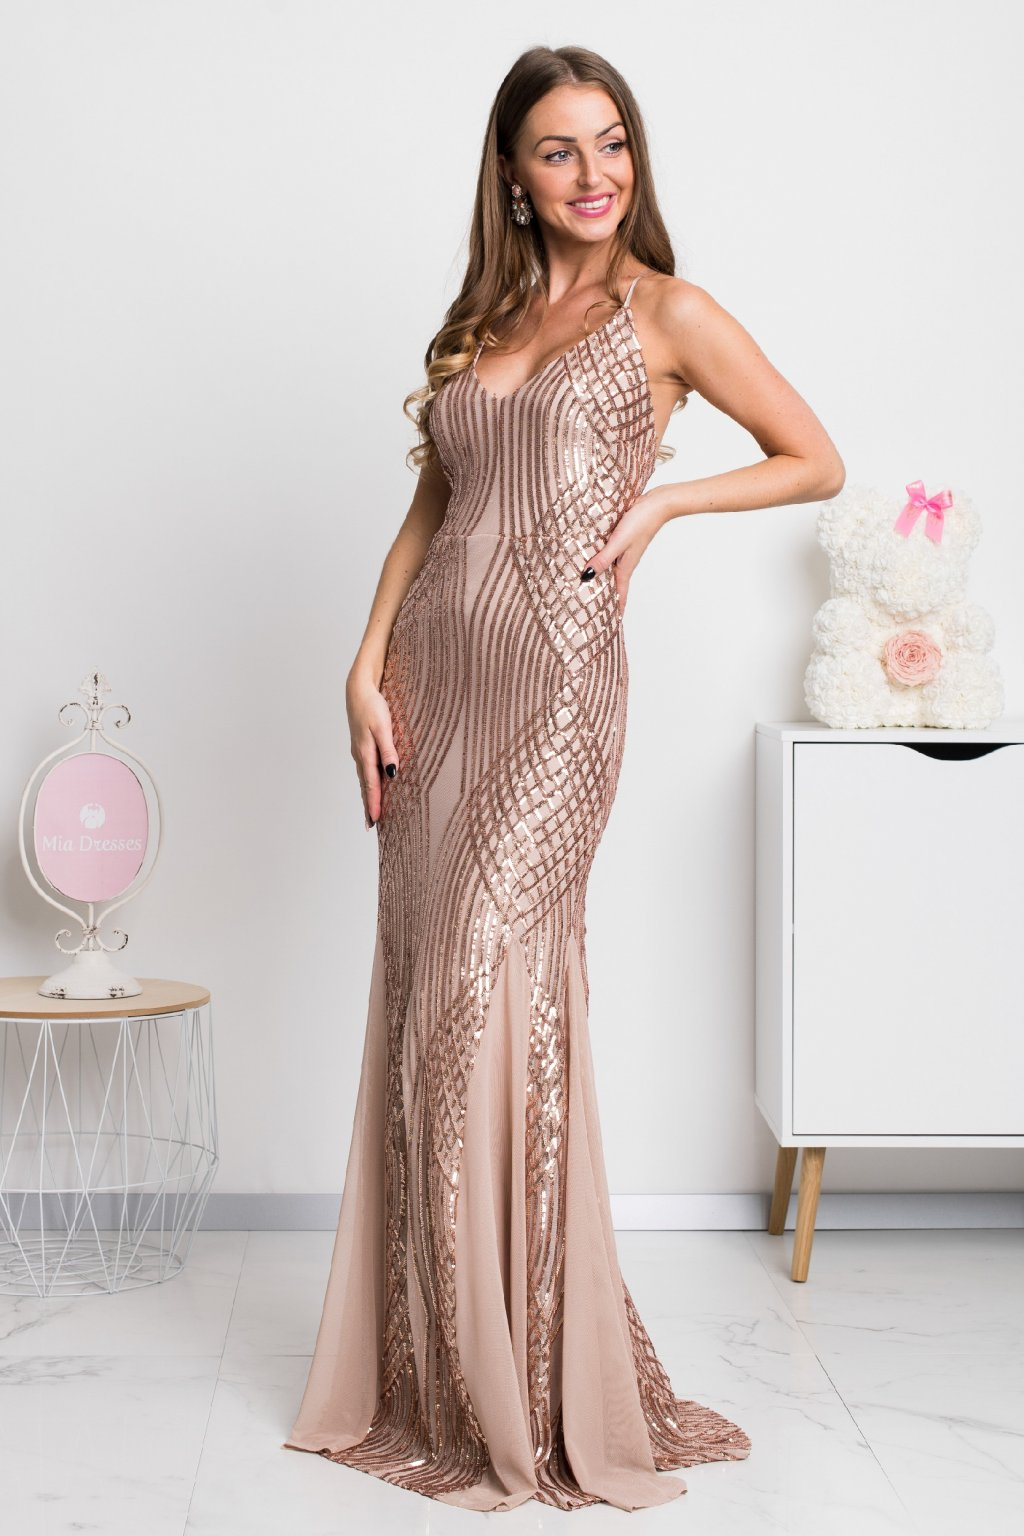 Champagne sequin backless dress